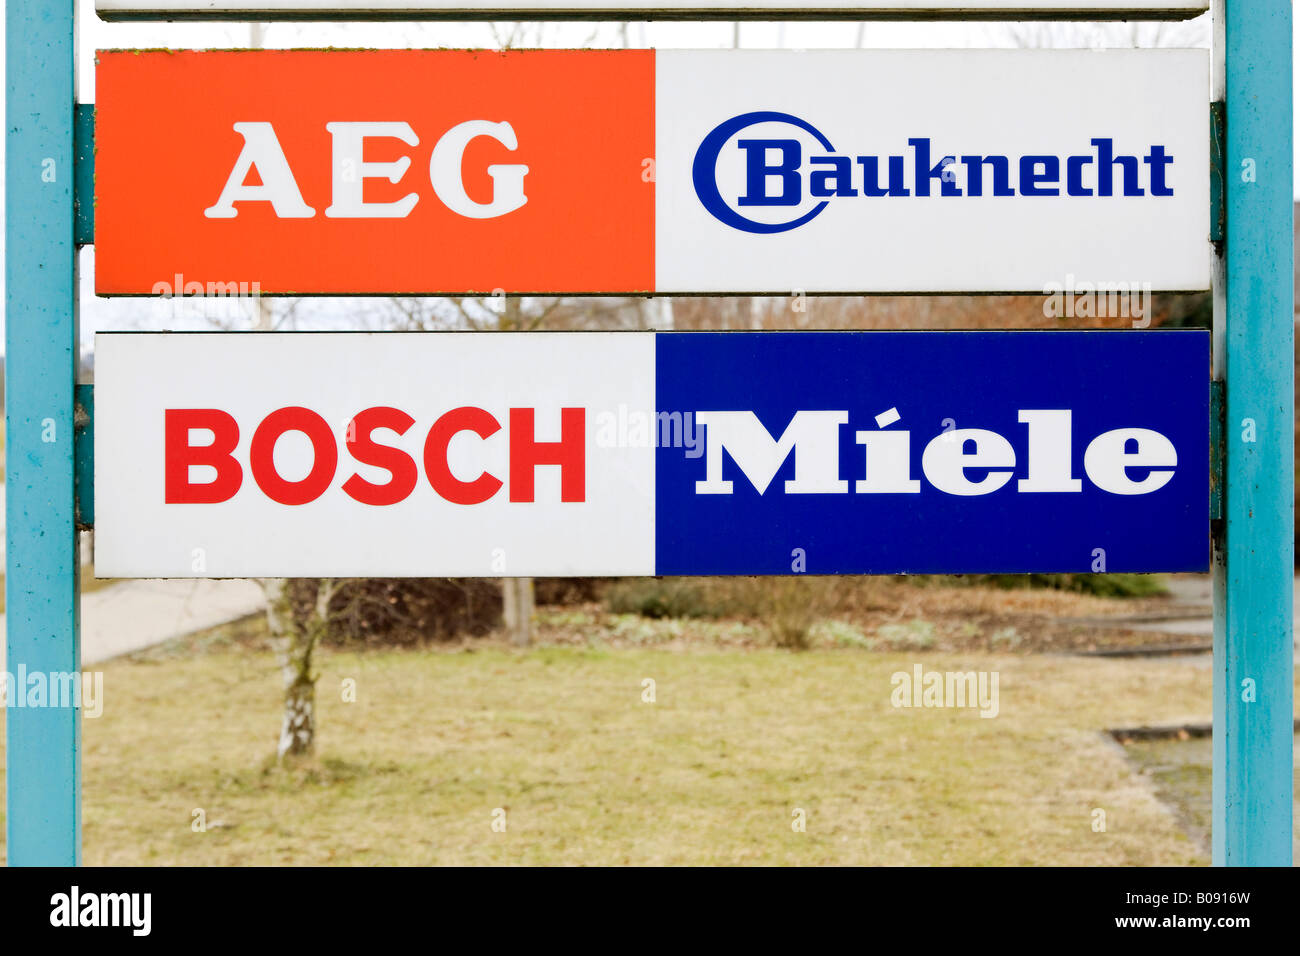 german kitchen stock photos u0026 german kitchen stock images alamy